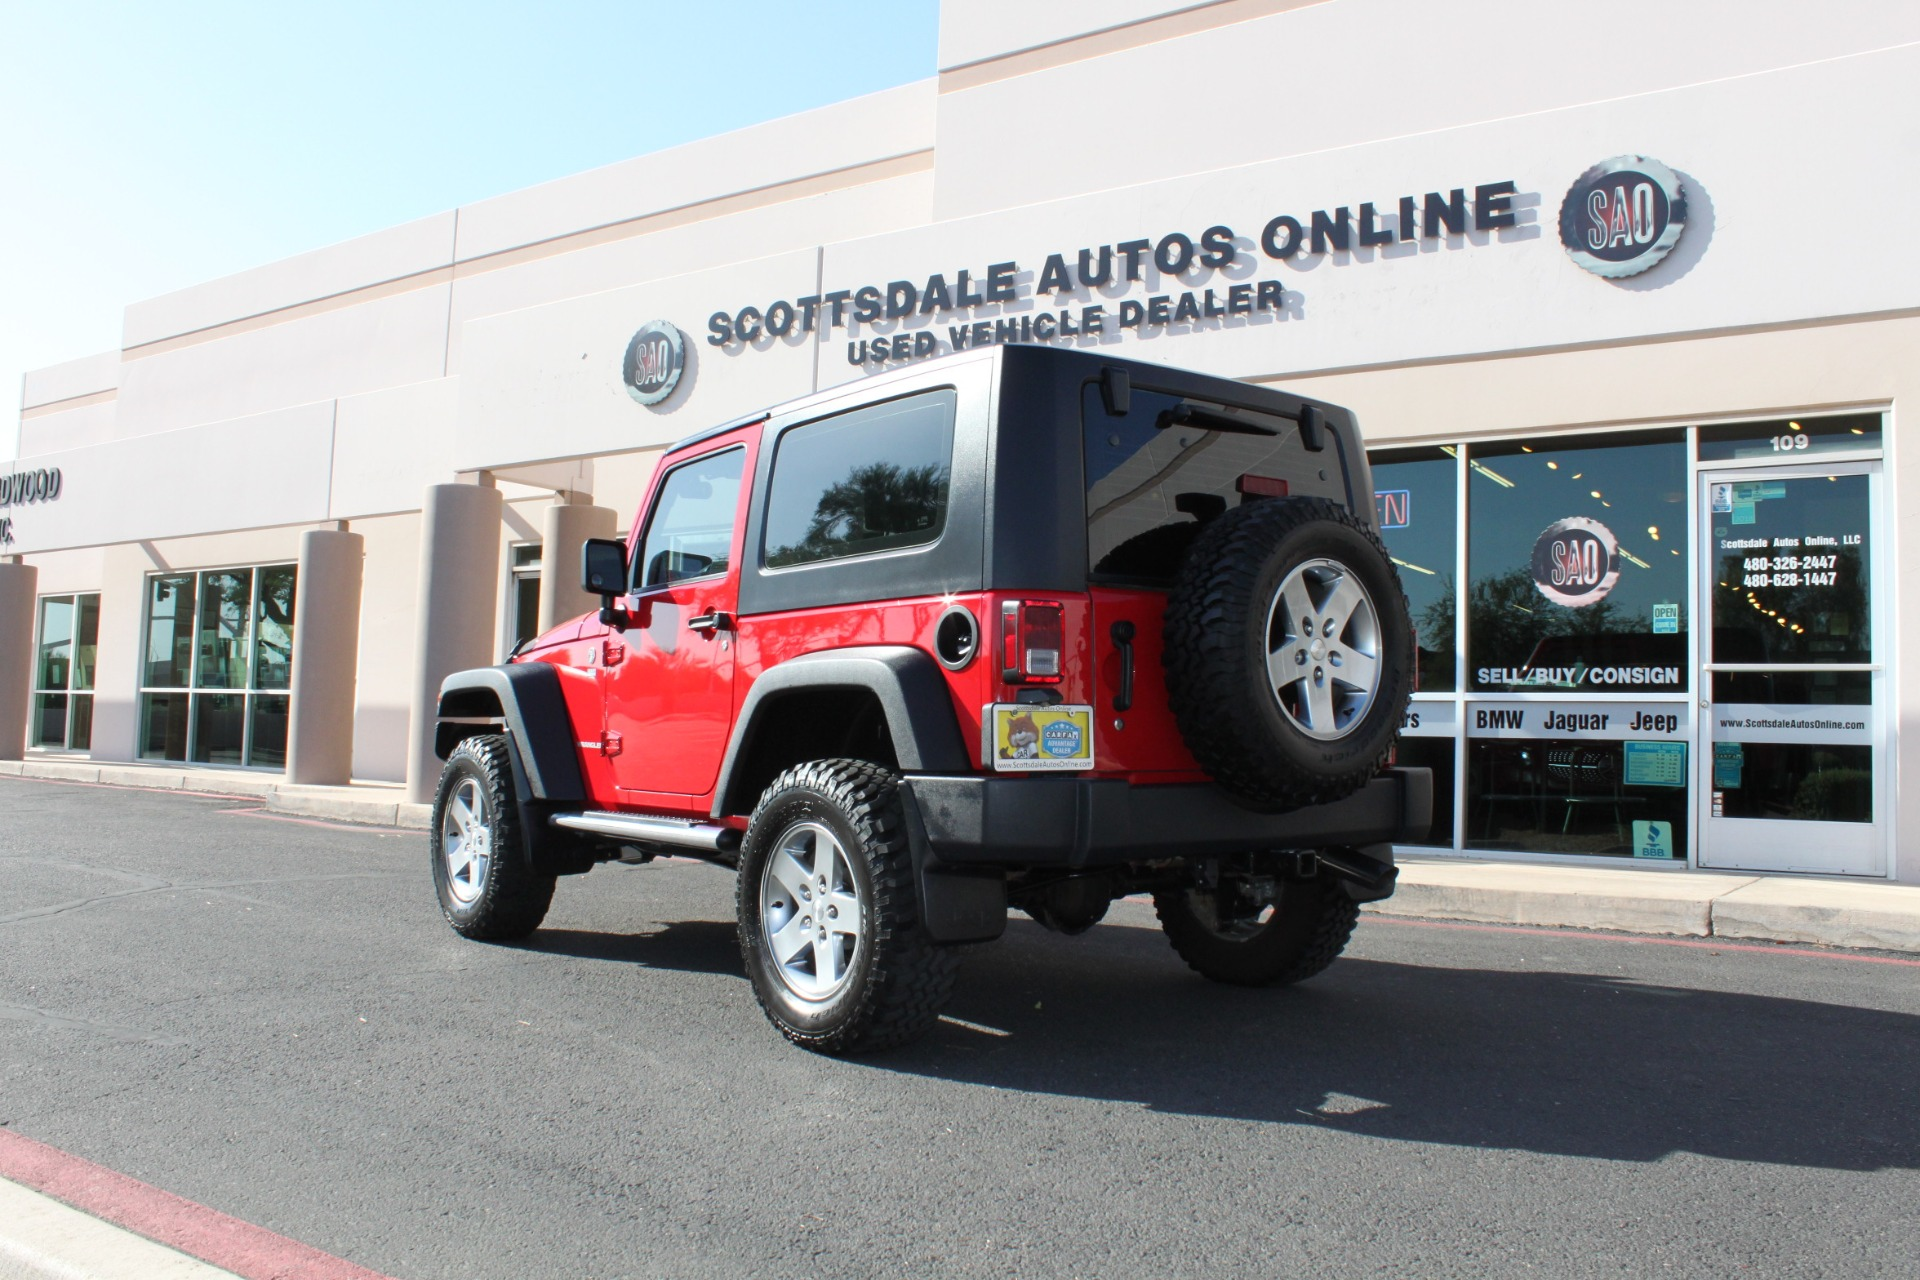 Used-2007-Jeep-Wrangler-X-Ripp-Supercharged-Chevelle